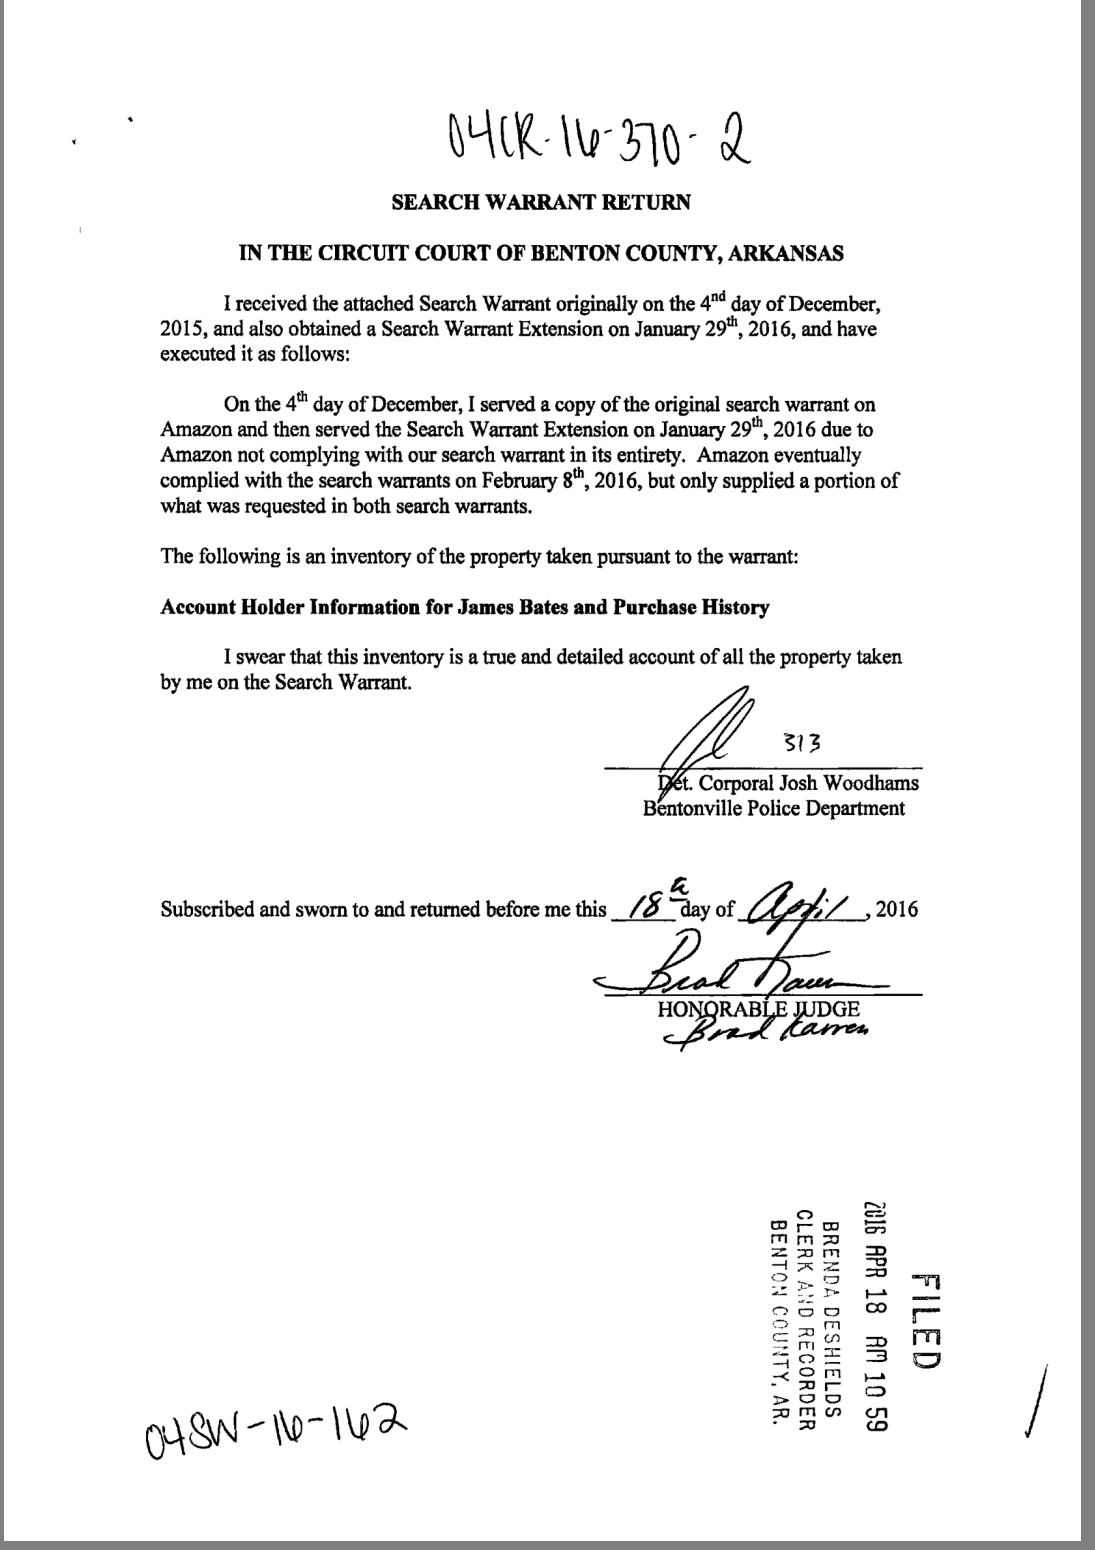 Report filed with the court on warrants served to Amazon for James Bates'  Echo data